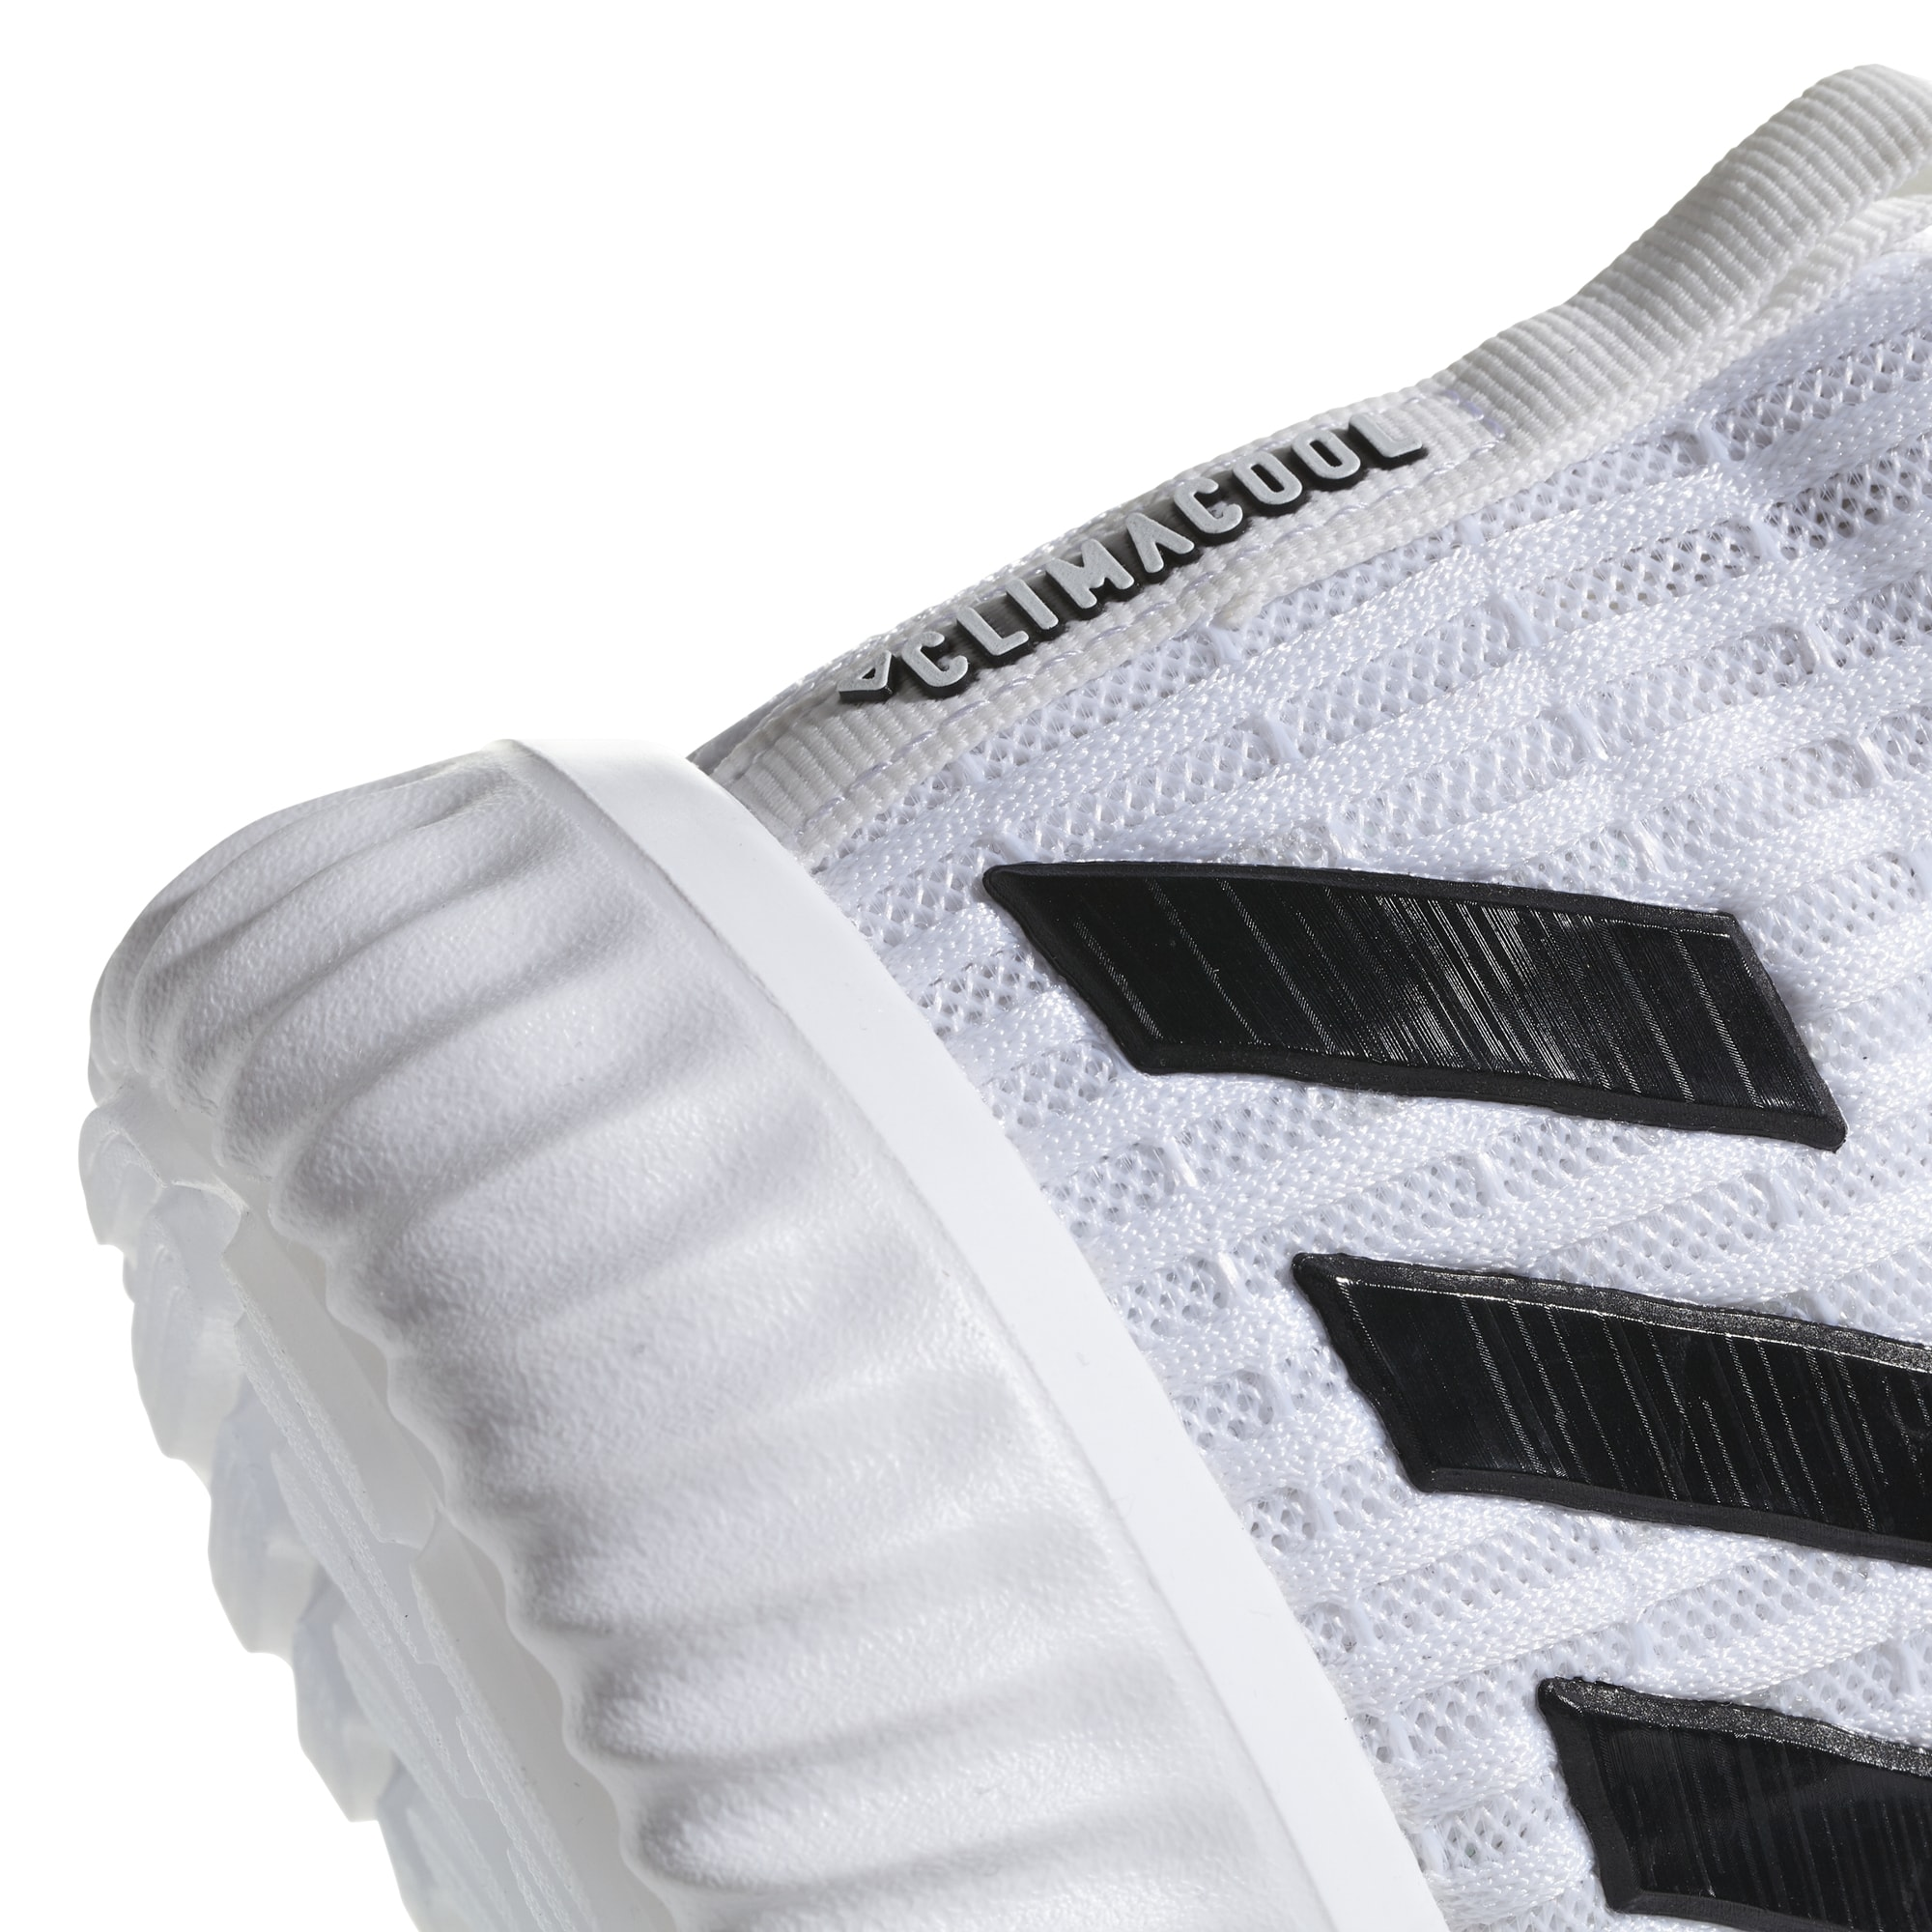 Adidas Climacool Joggesko Whiteblacksilver Tights.no